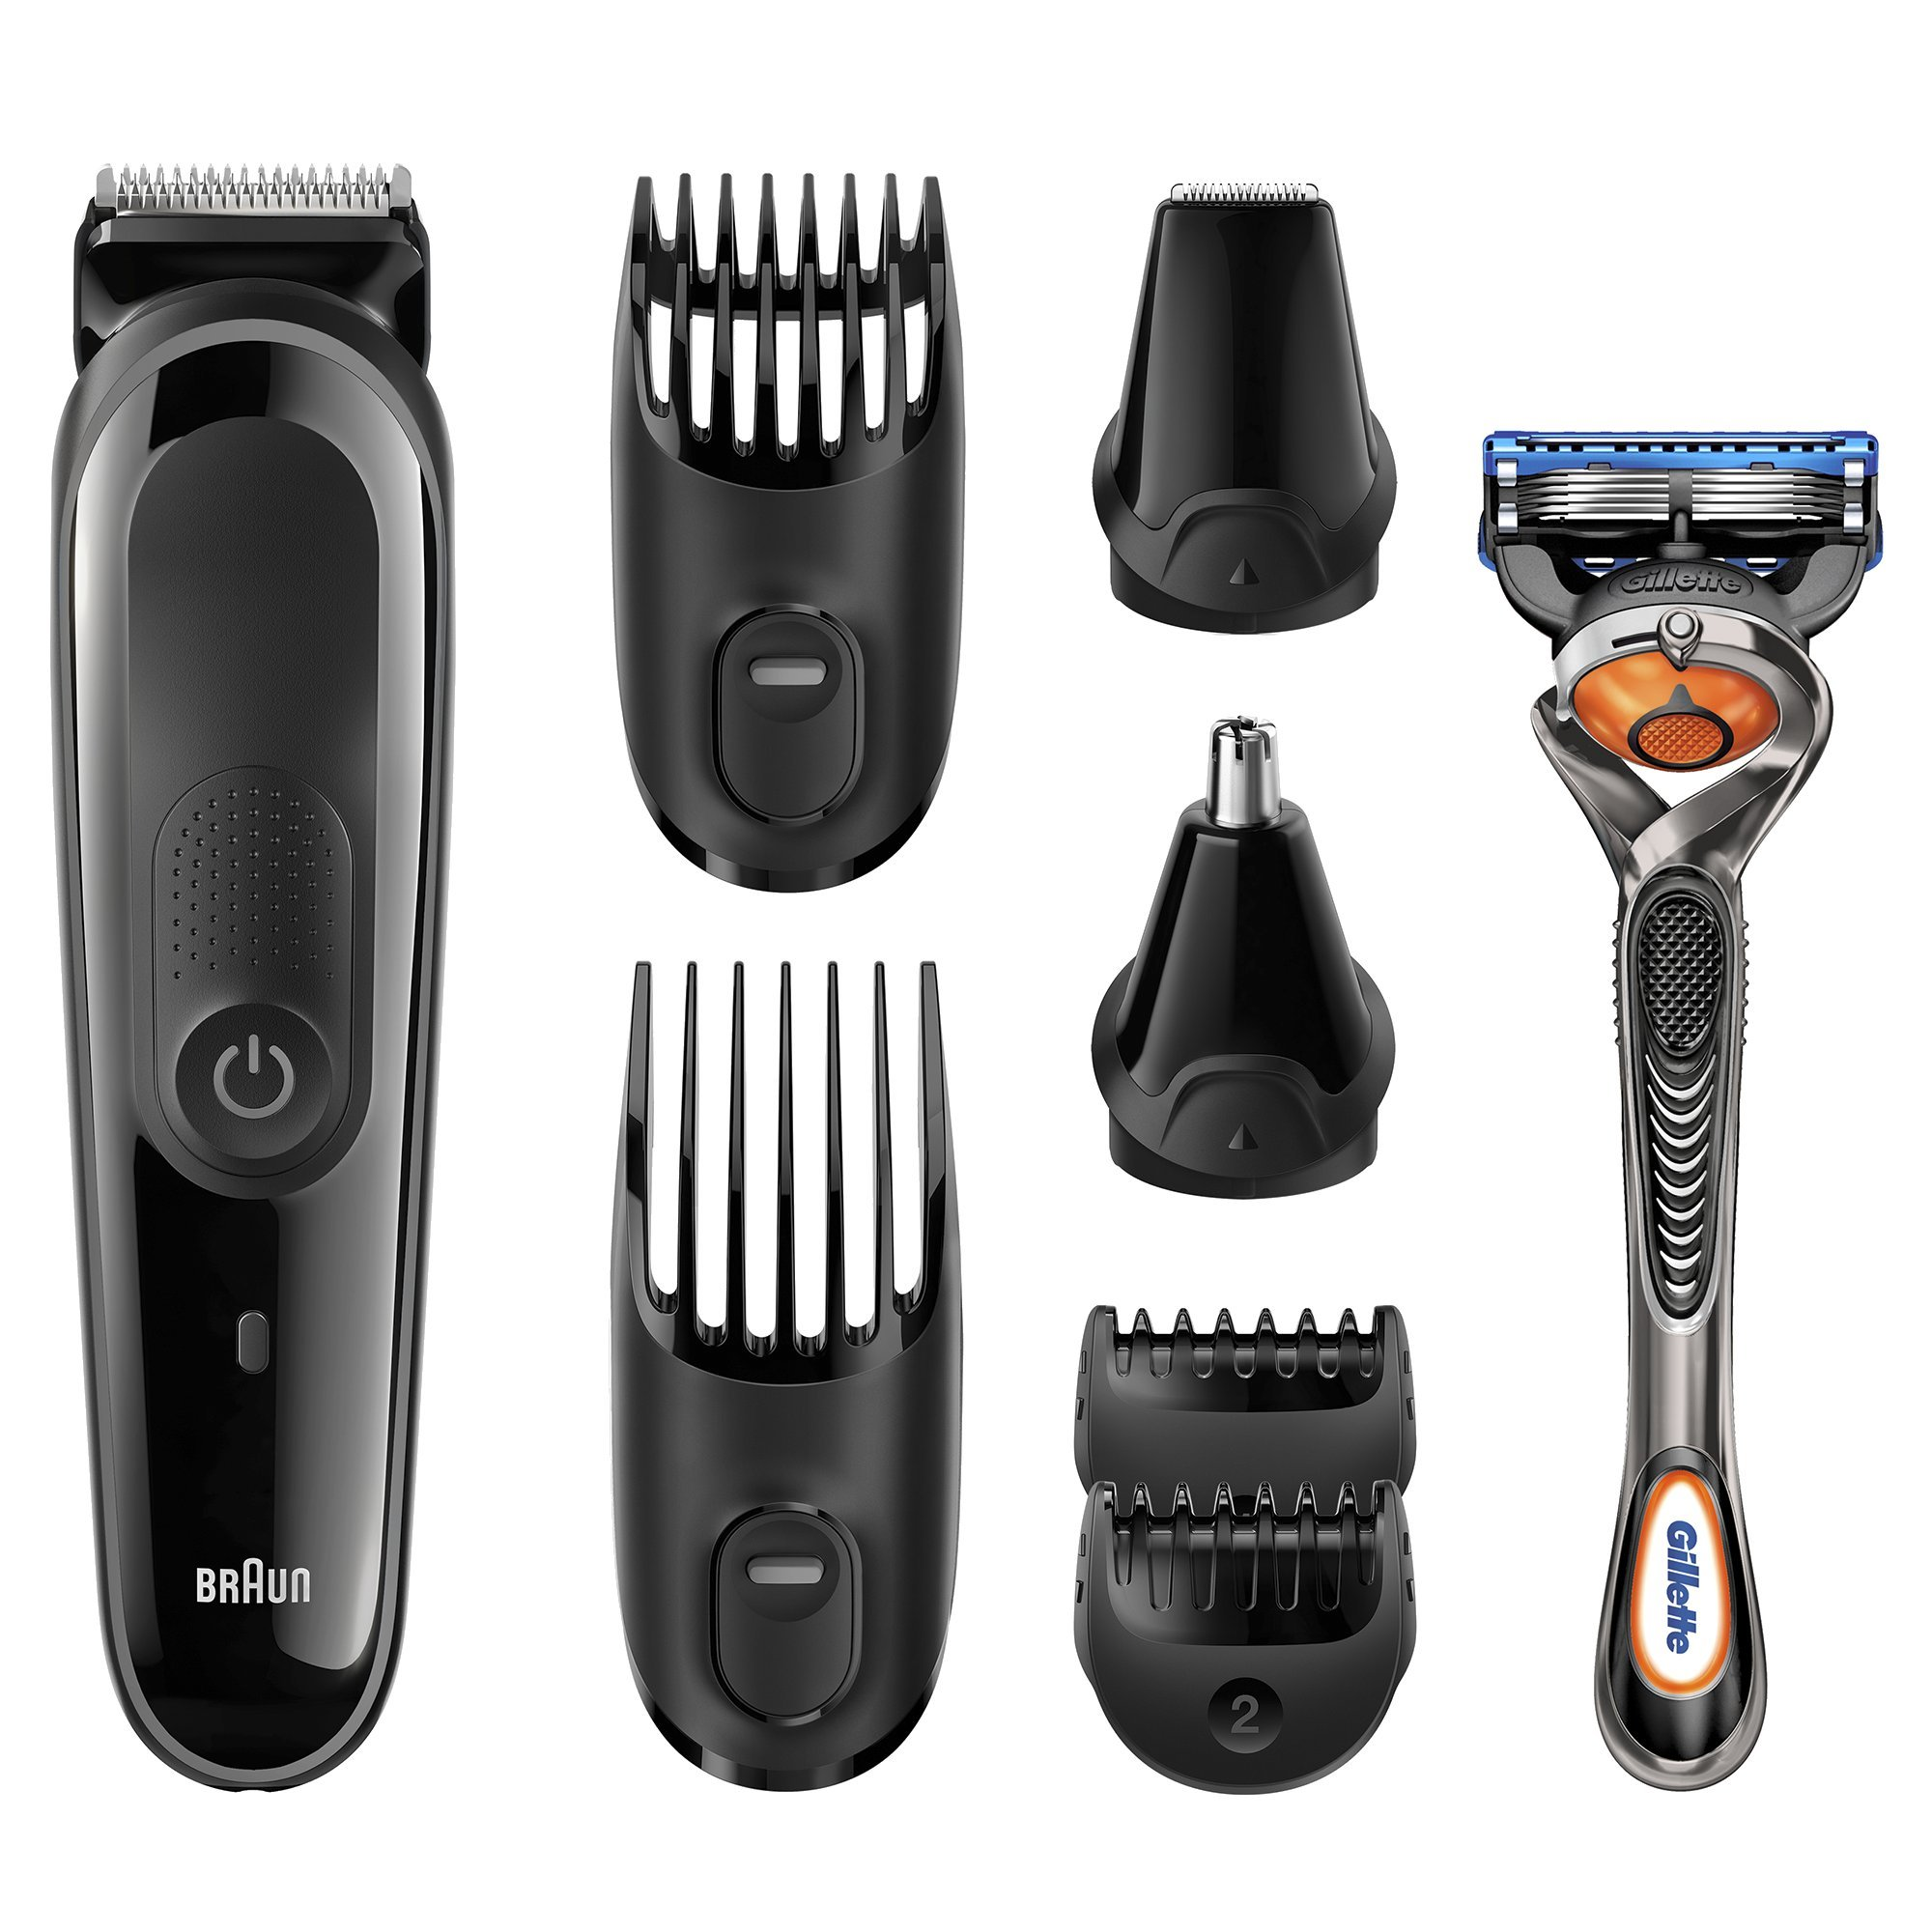 braun mgk3060 grooming kit 8 in one beard hair trimming kit fusion proglide ebay. Black Bedroom Furniture Sets. Home Design Ideas